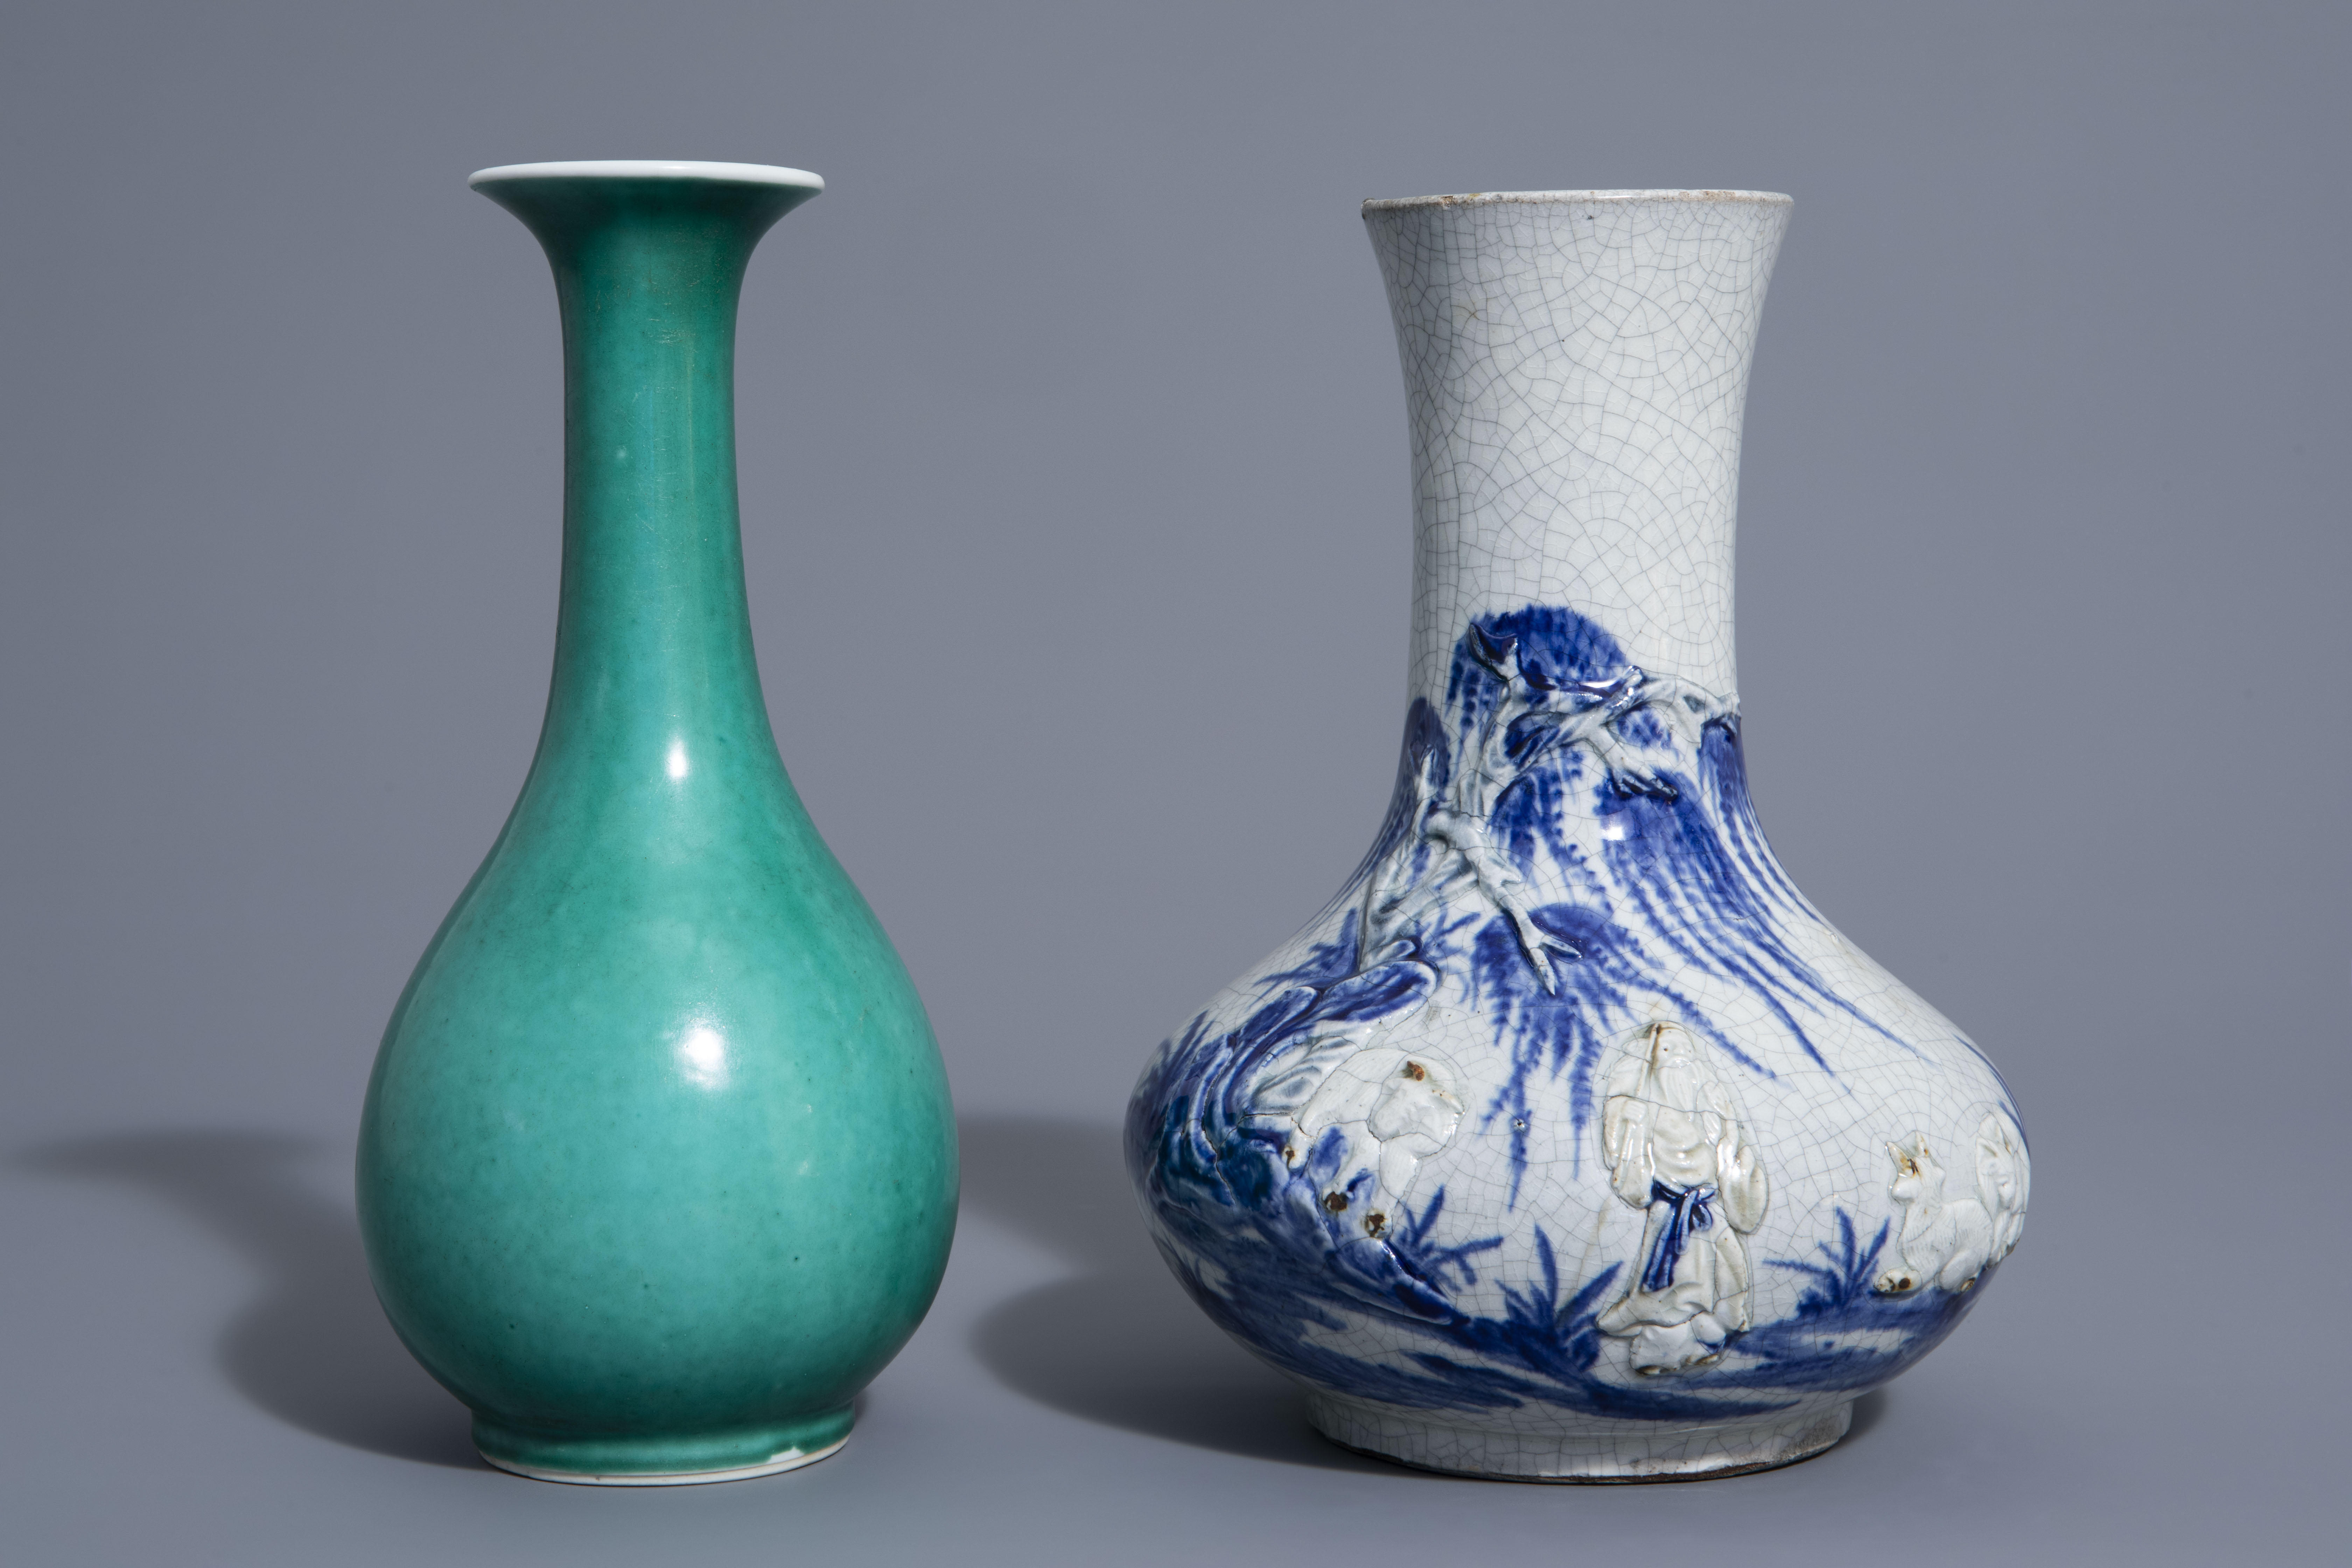 A Chinese blue & white crackle glazed vase, a monochrome green vase and a brushwasher, 19th/20th C. - Image 2 of 13